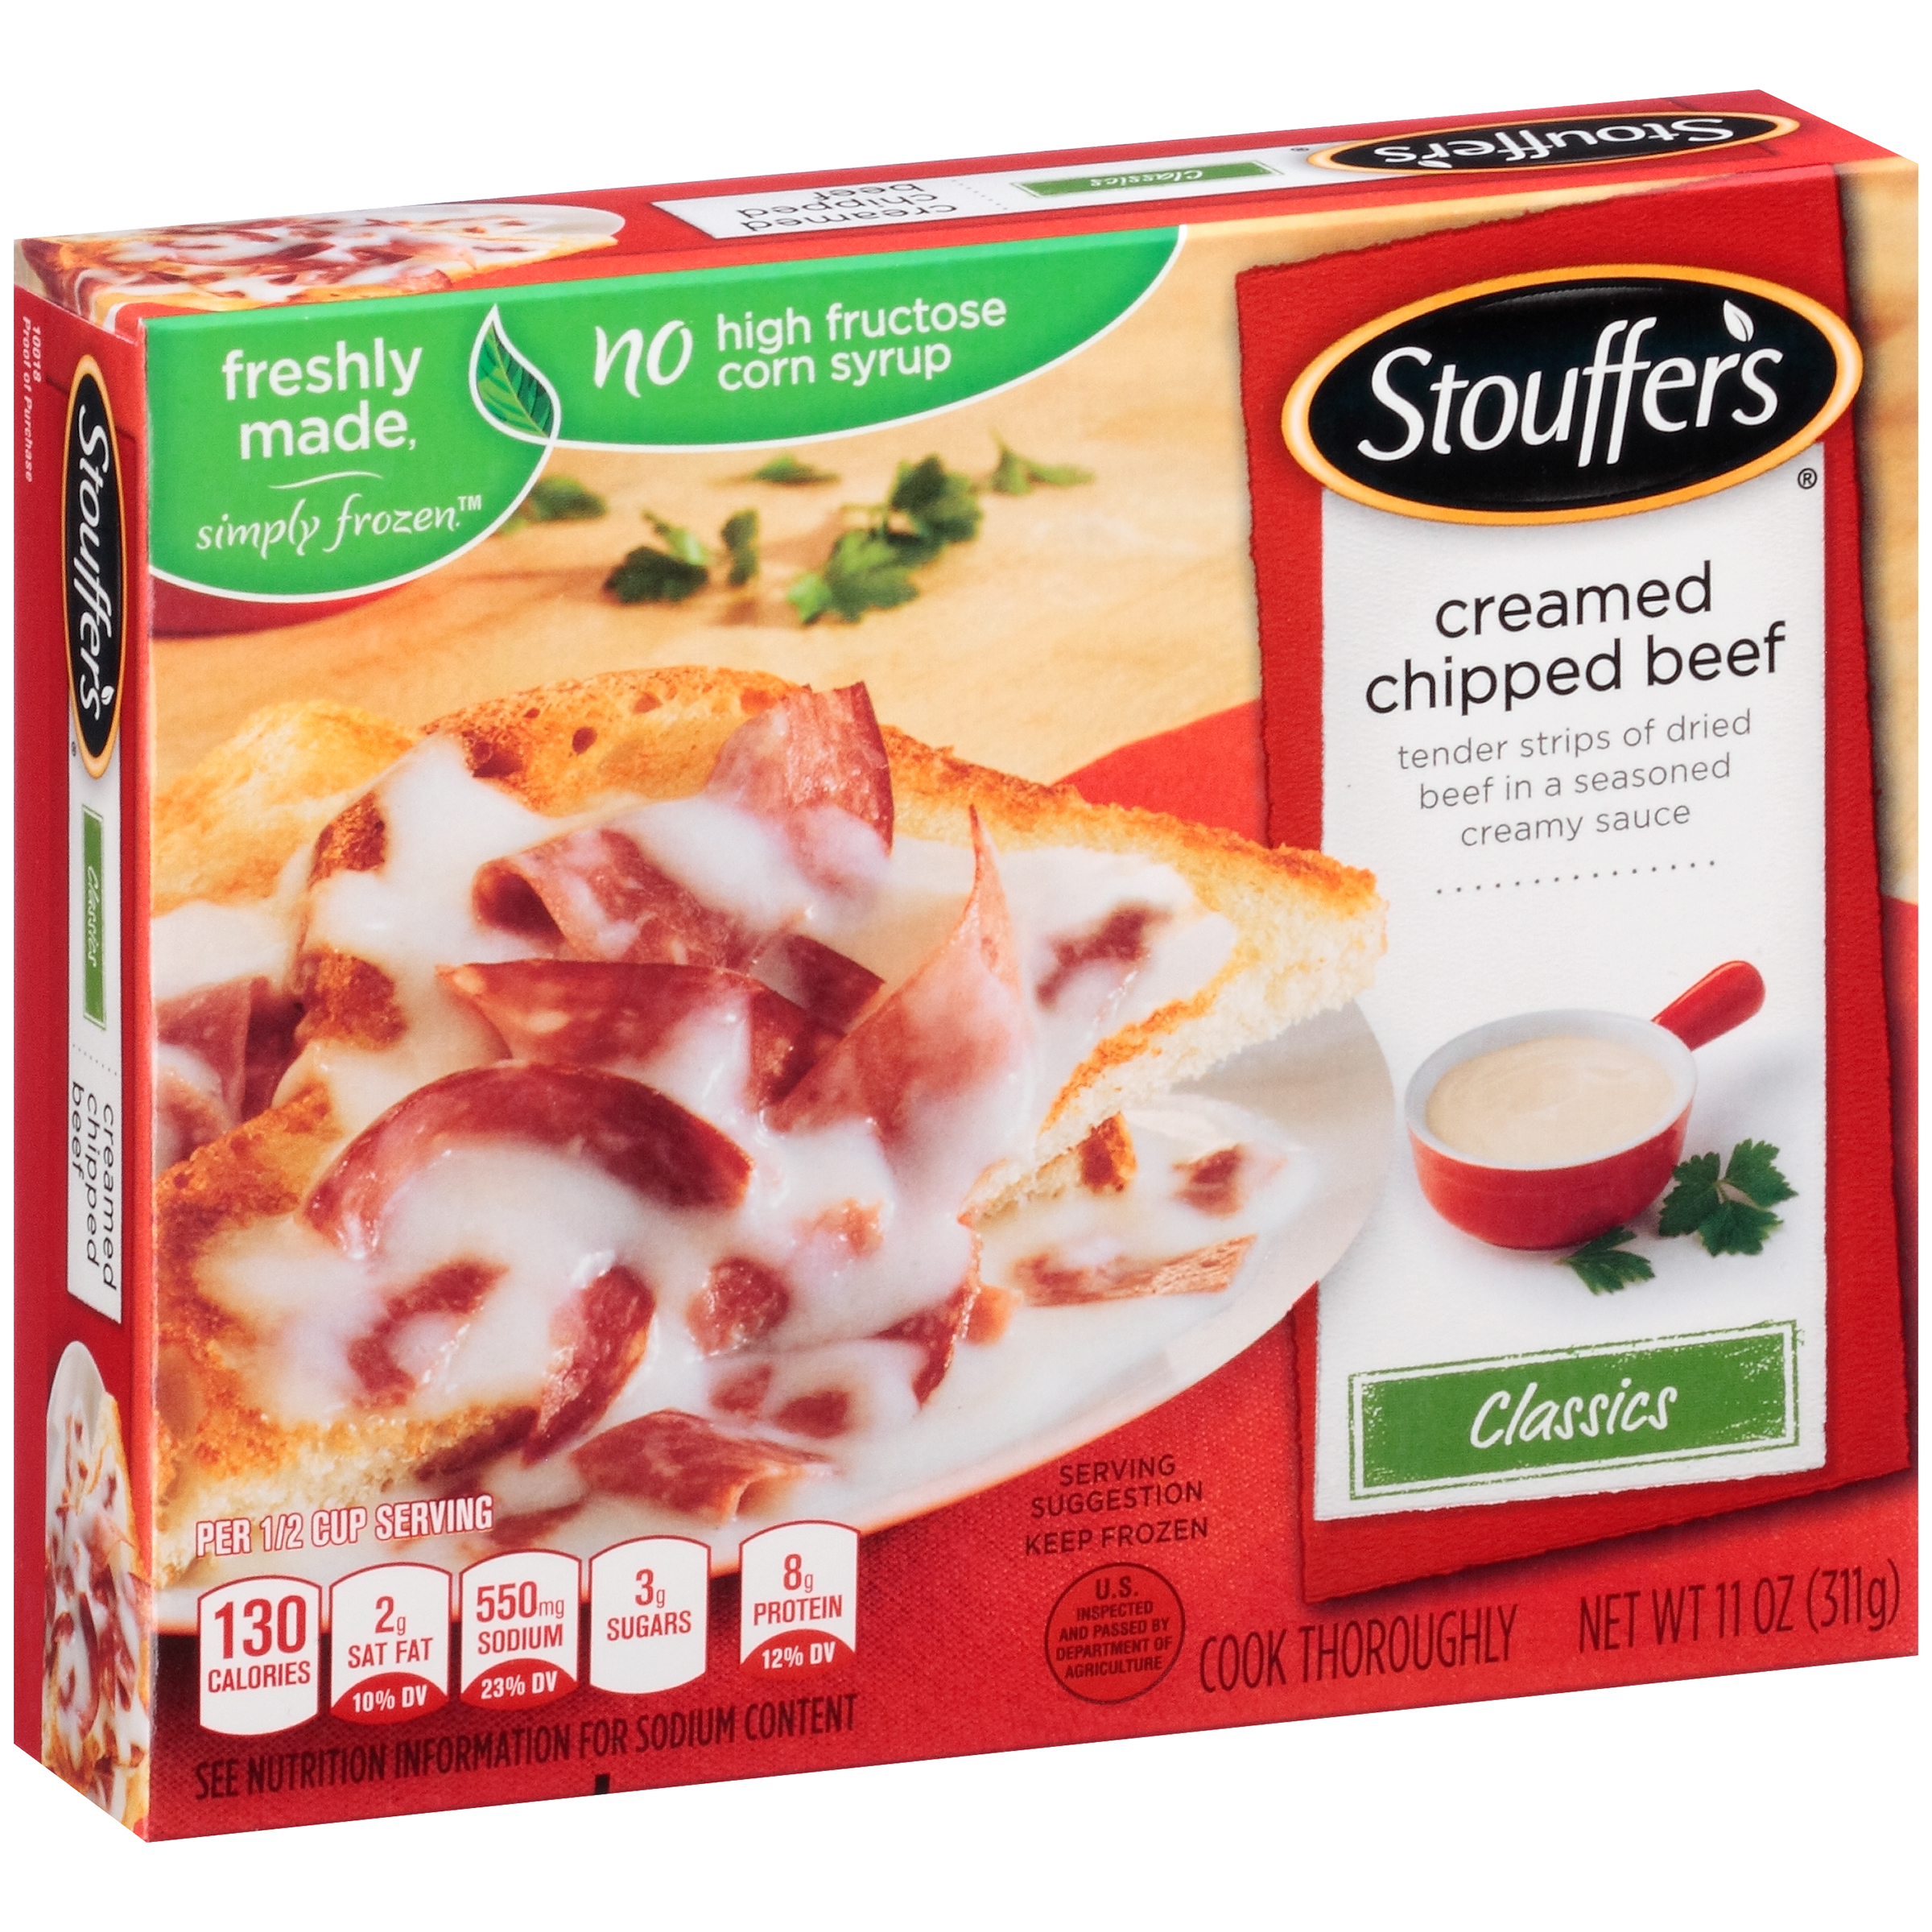 STOUFFER'S Classics Creamed Chipped Beef 11 oz. Box